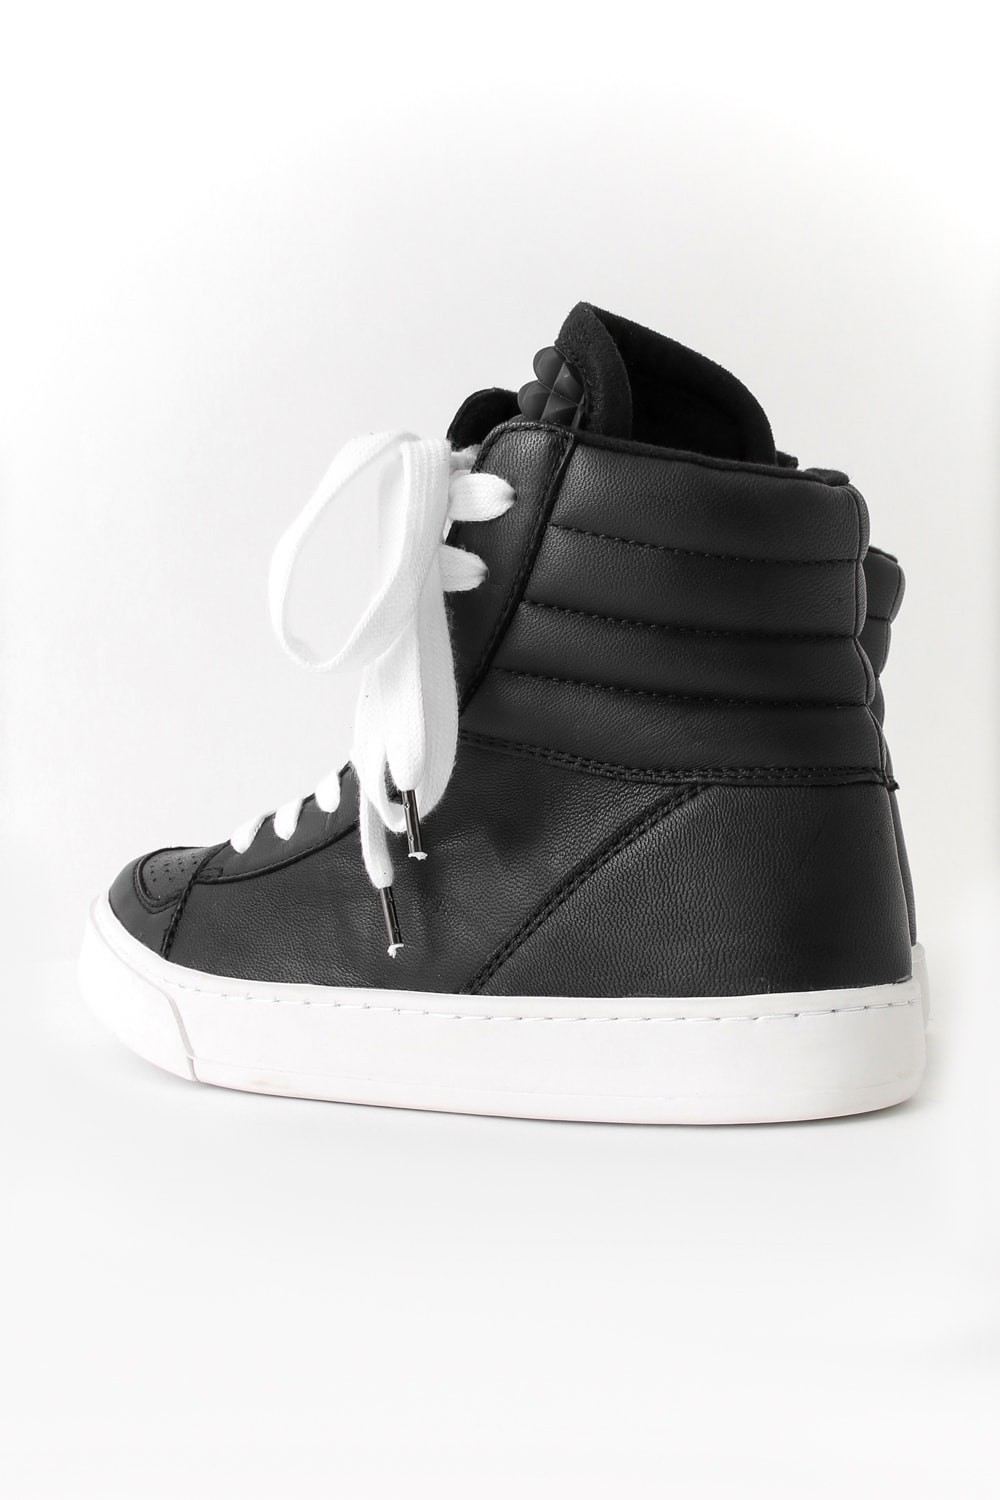 DIET BUTCHER SLIM SKIN [DBSS] 16AW Twisted Sneakers BLACK